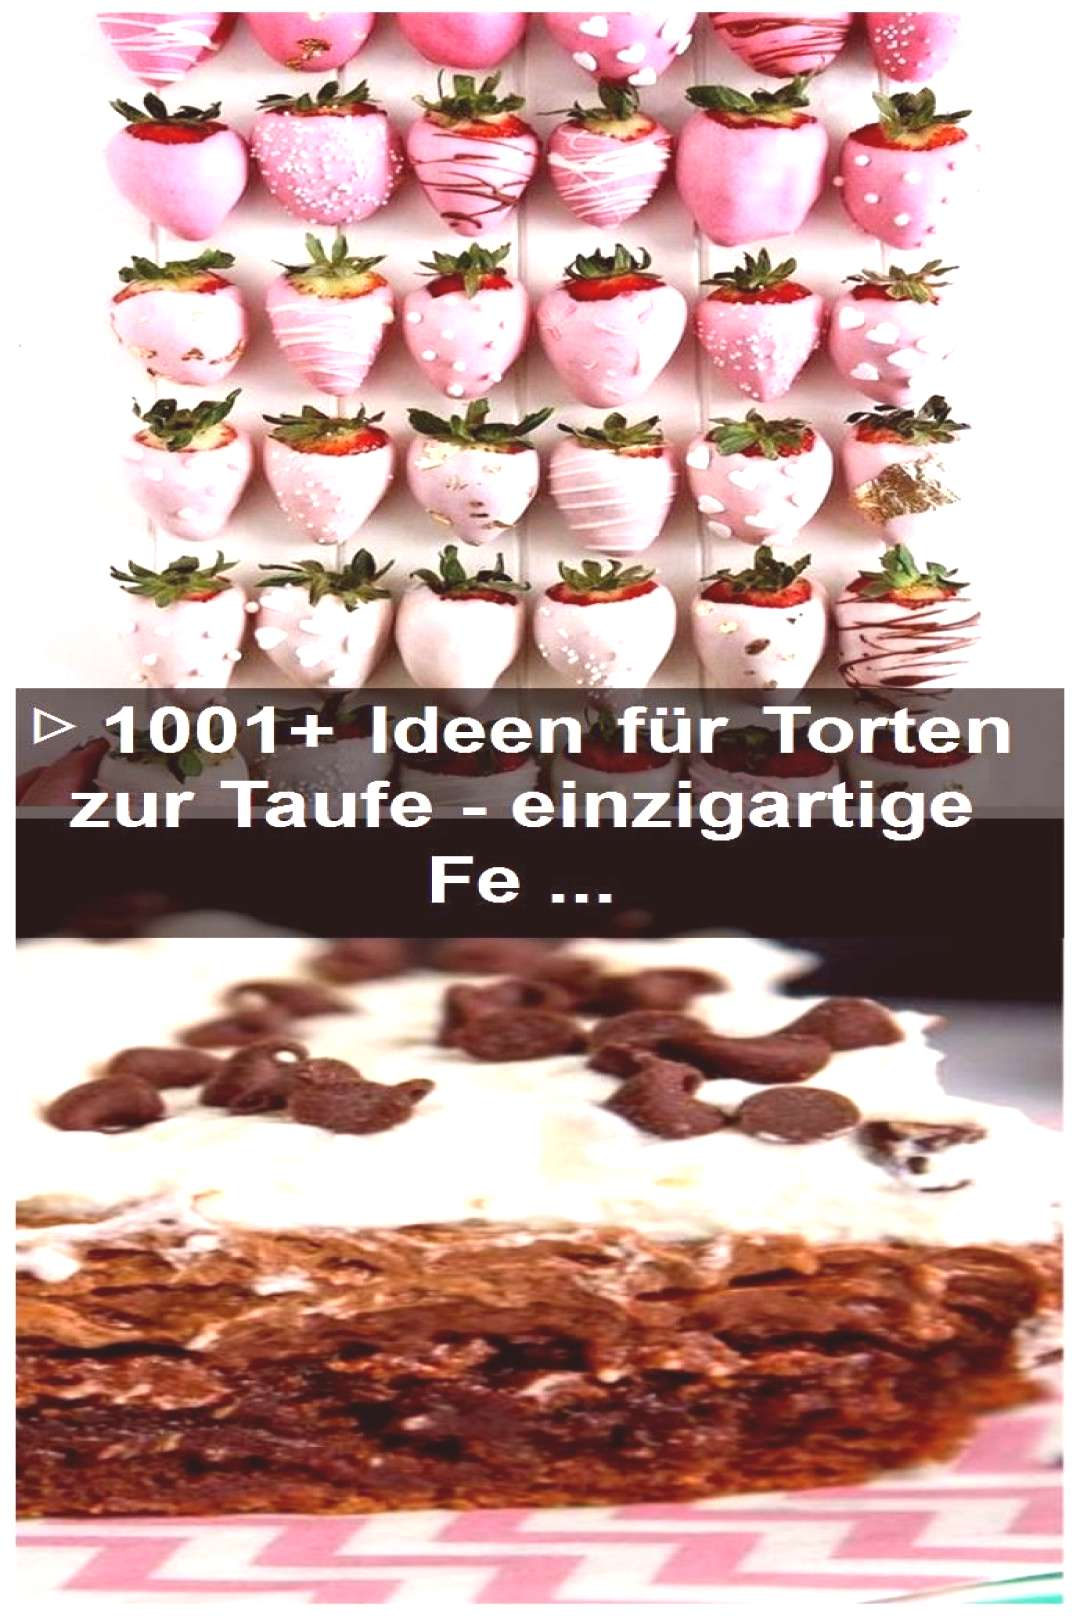 ▷ 1001+ ideas for cakes for christening - create a unique celebration ▷ 1001+ ideas for cakes f